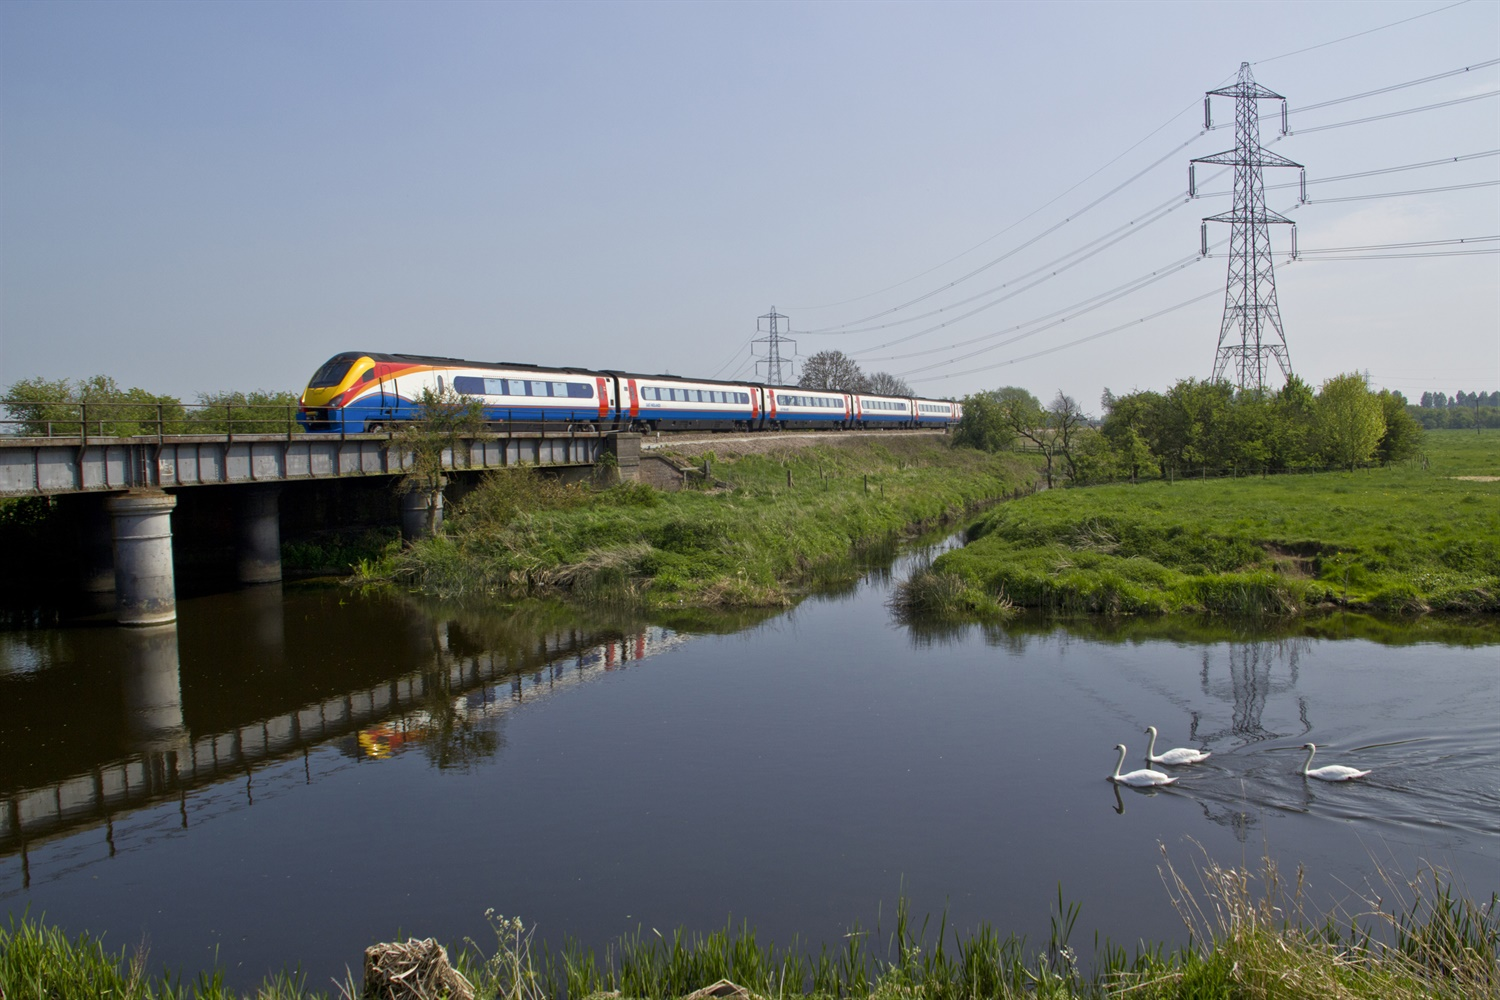 East Midlands hints that HS2 support depends on MML electrification